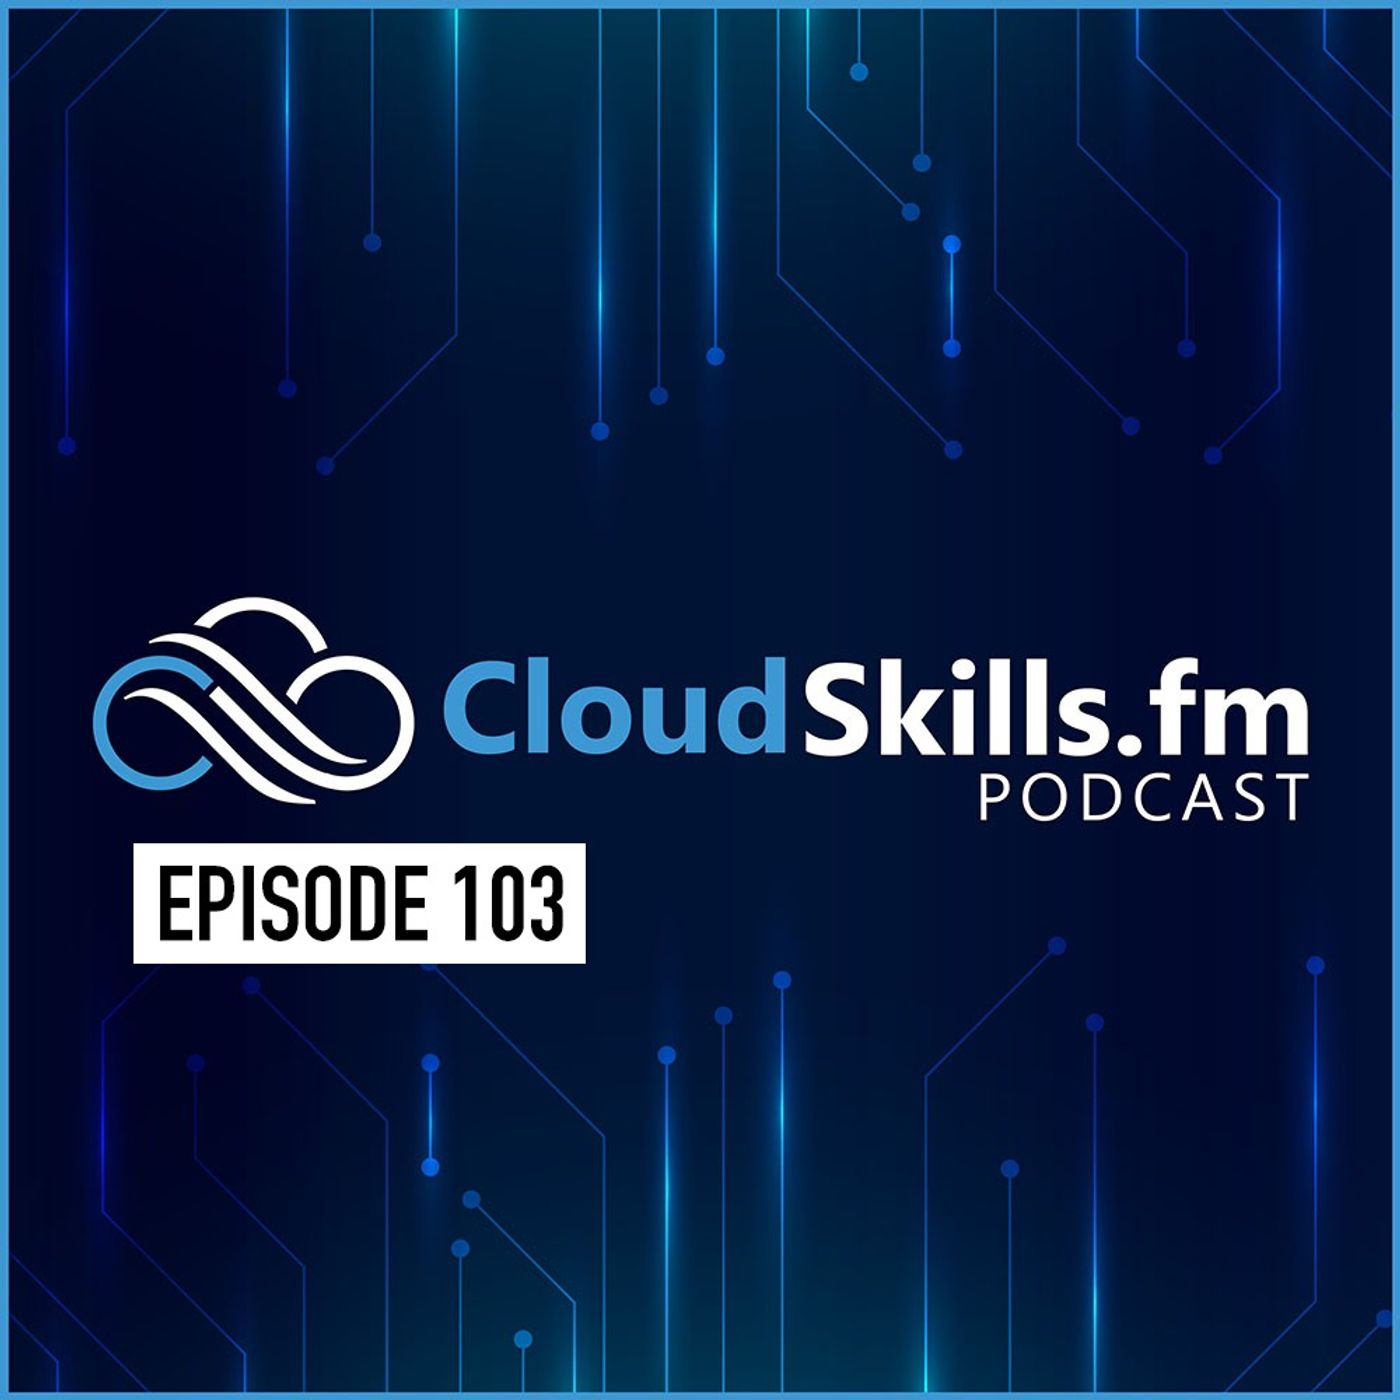 103: Artificial Intelligence with Simon Crosby